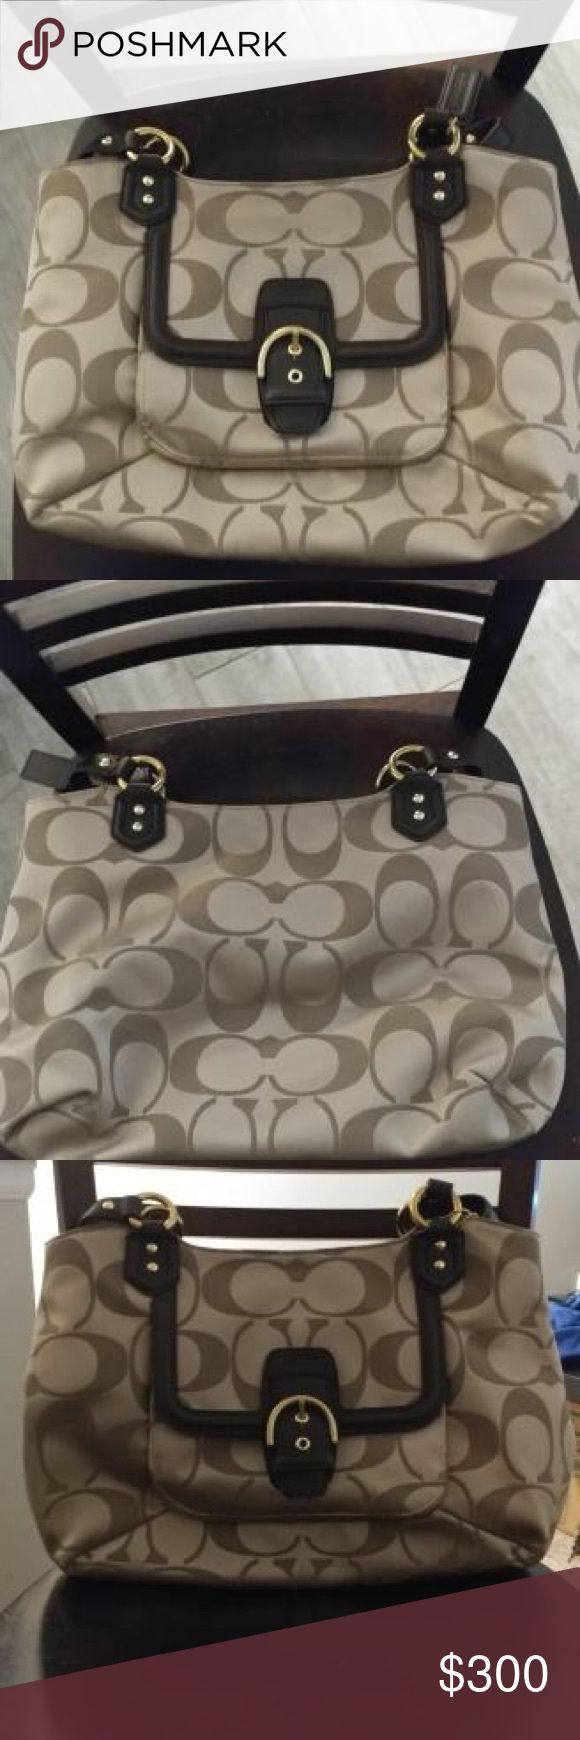 Coach Purse. Brand new Coach bag.   Never been used, still in the original bag and tissue paper from the Coach store.    Will include the fabric cleaner also! Coach Bags Satchels